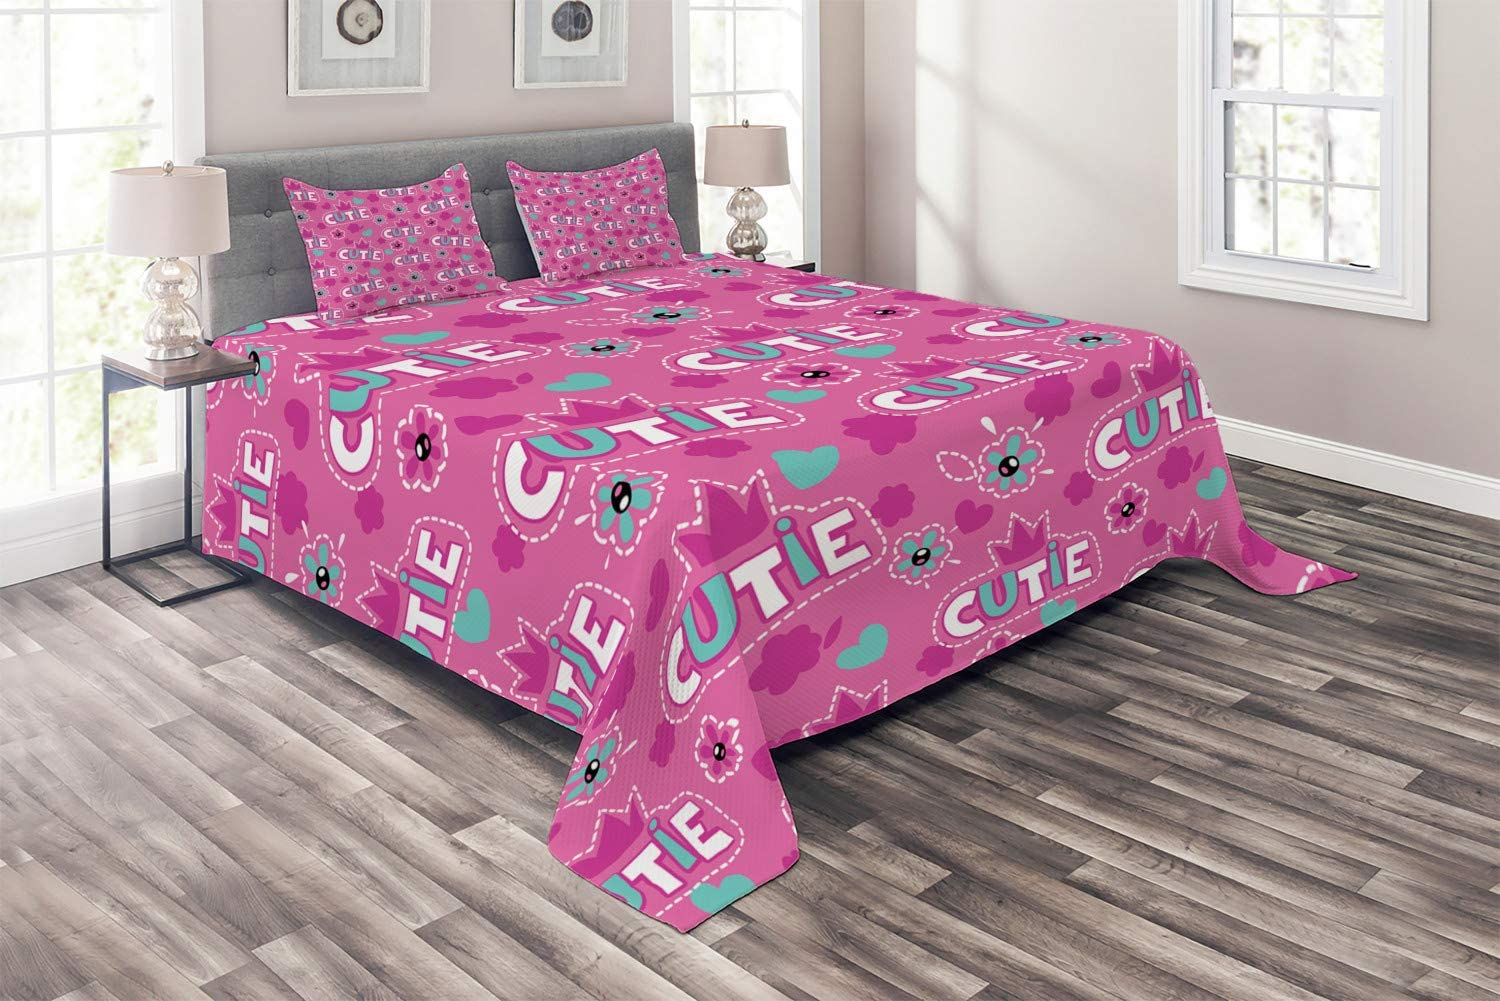 Bombing free shipping Ambesonne Feminine Coverlet Cutie Crown Pattern Lettering Popular brand in the world with